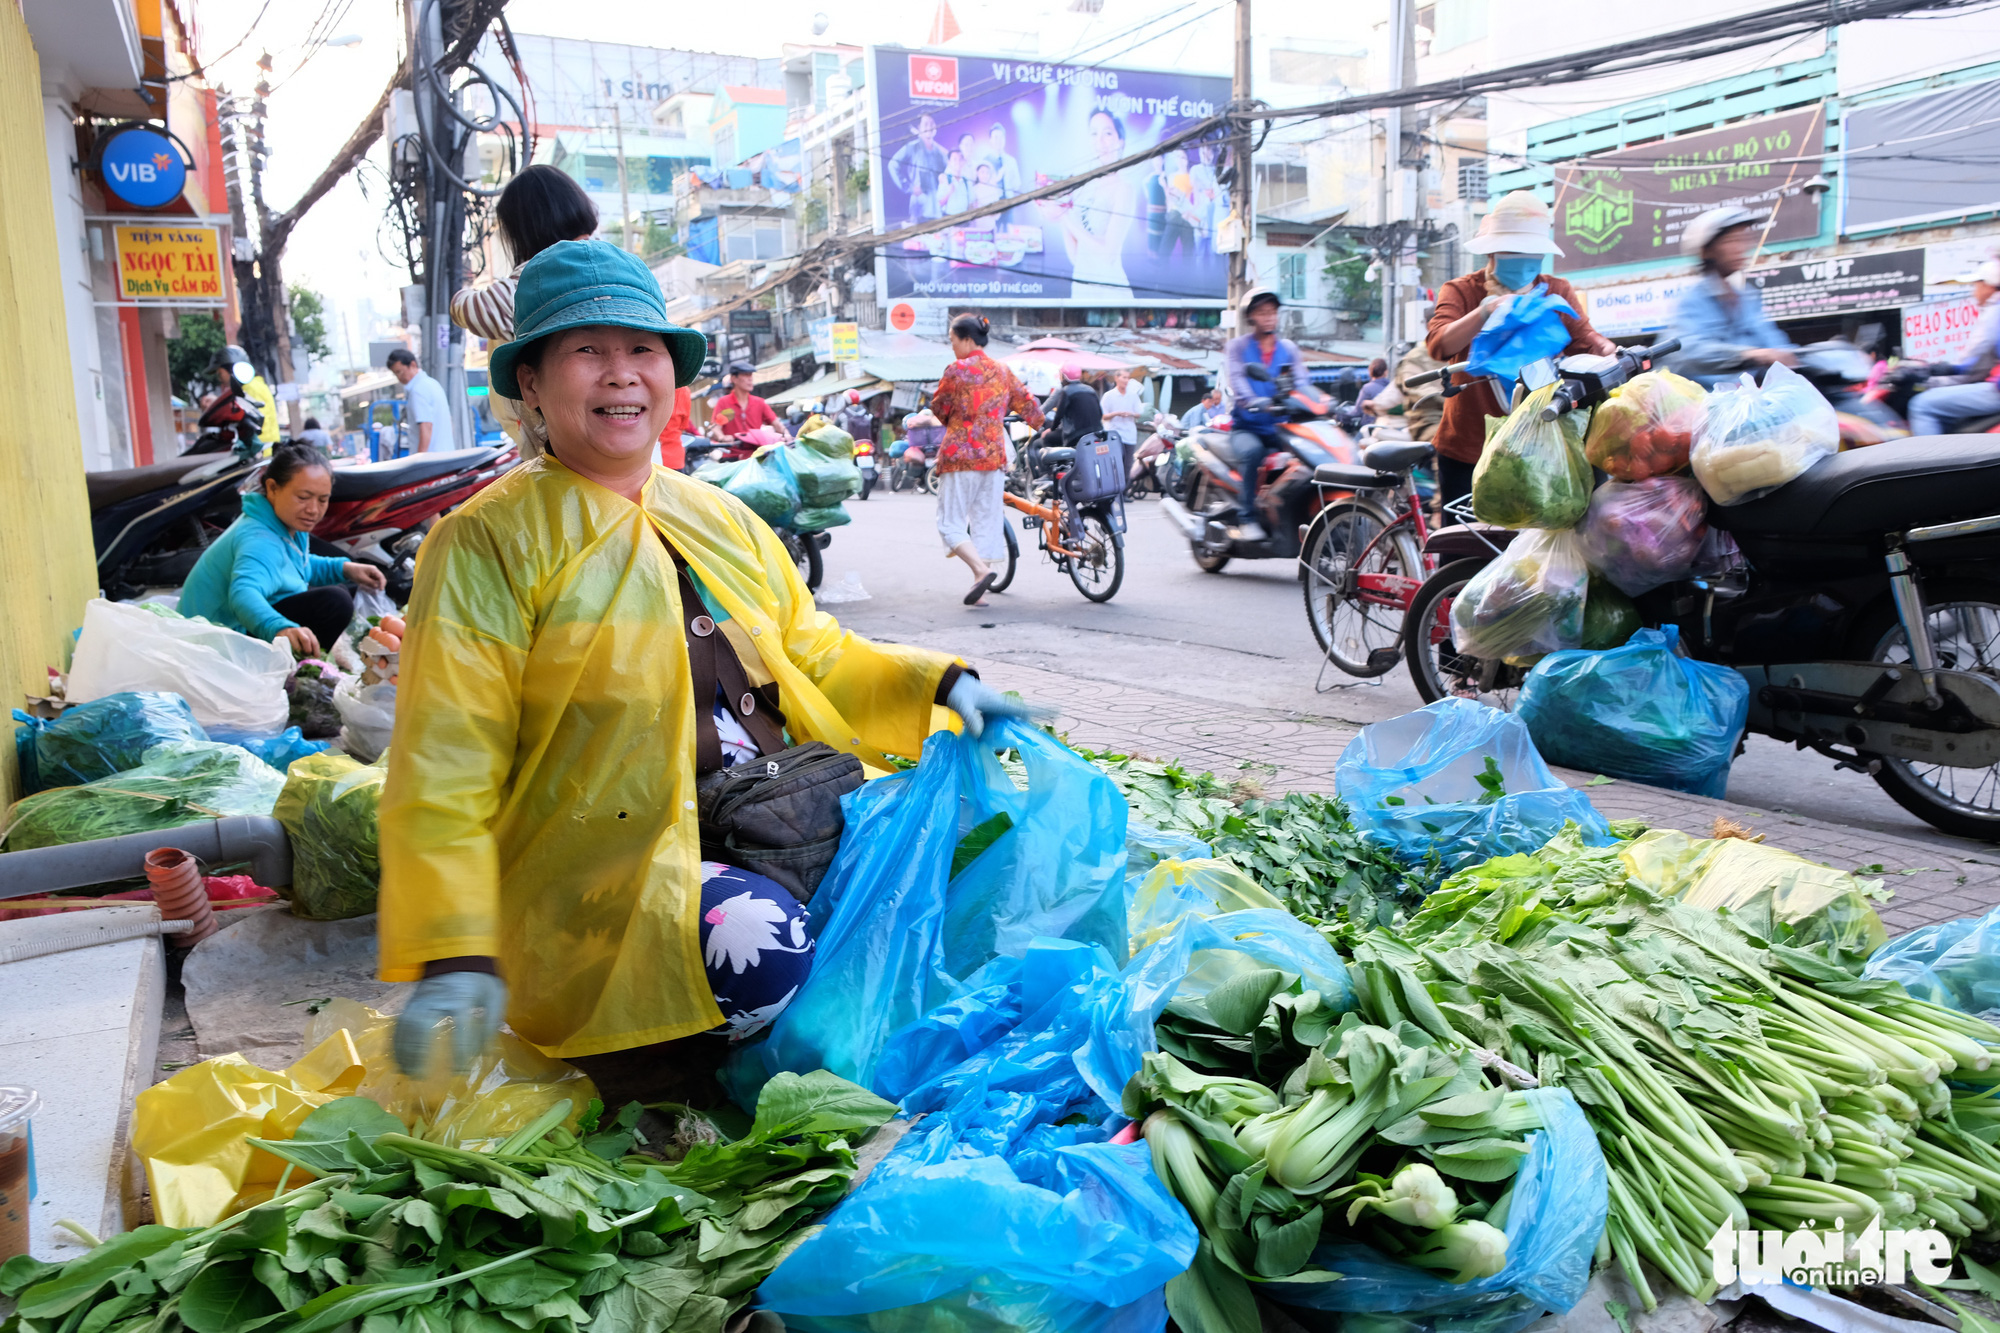 A woman sells vegetable along a street in District 10, Ho Chi Minh City. Photo: Bong Mai / Tuoi Tre